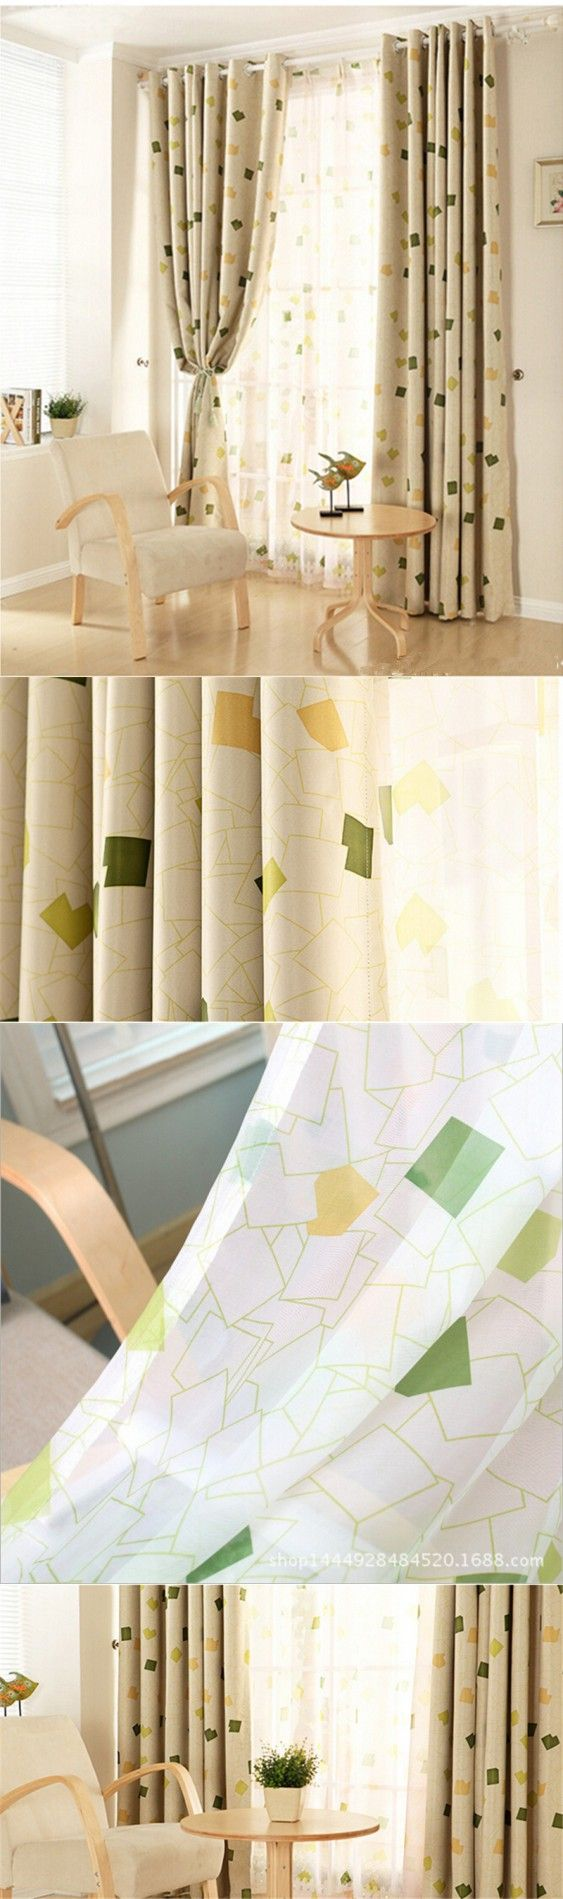 Curtain window curtains for living room bedroom blackout curtains - Luxury Modern Grid Shade Blackout Curtains For Living Room Bedroom Kitchen Decorative Window Curtain